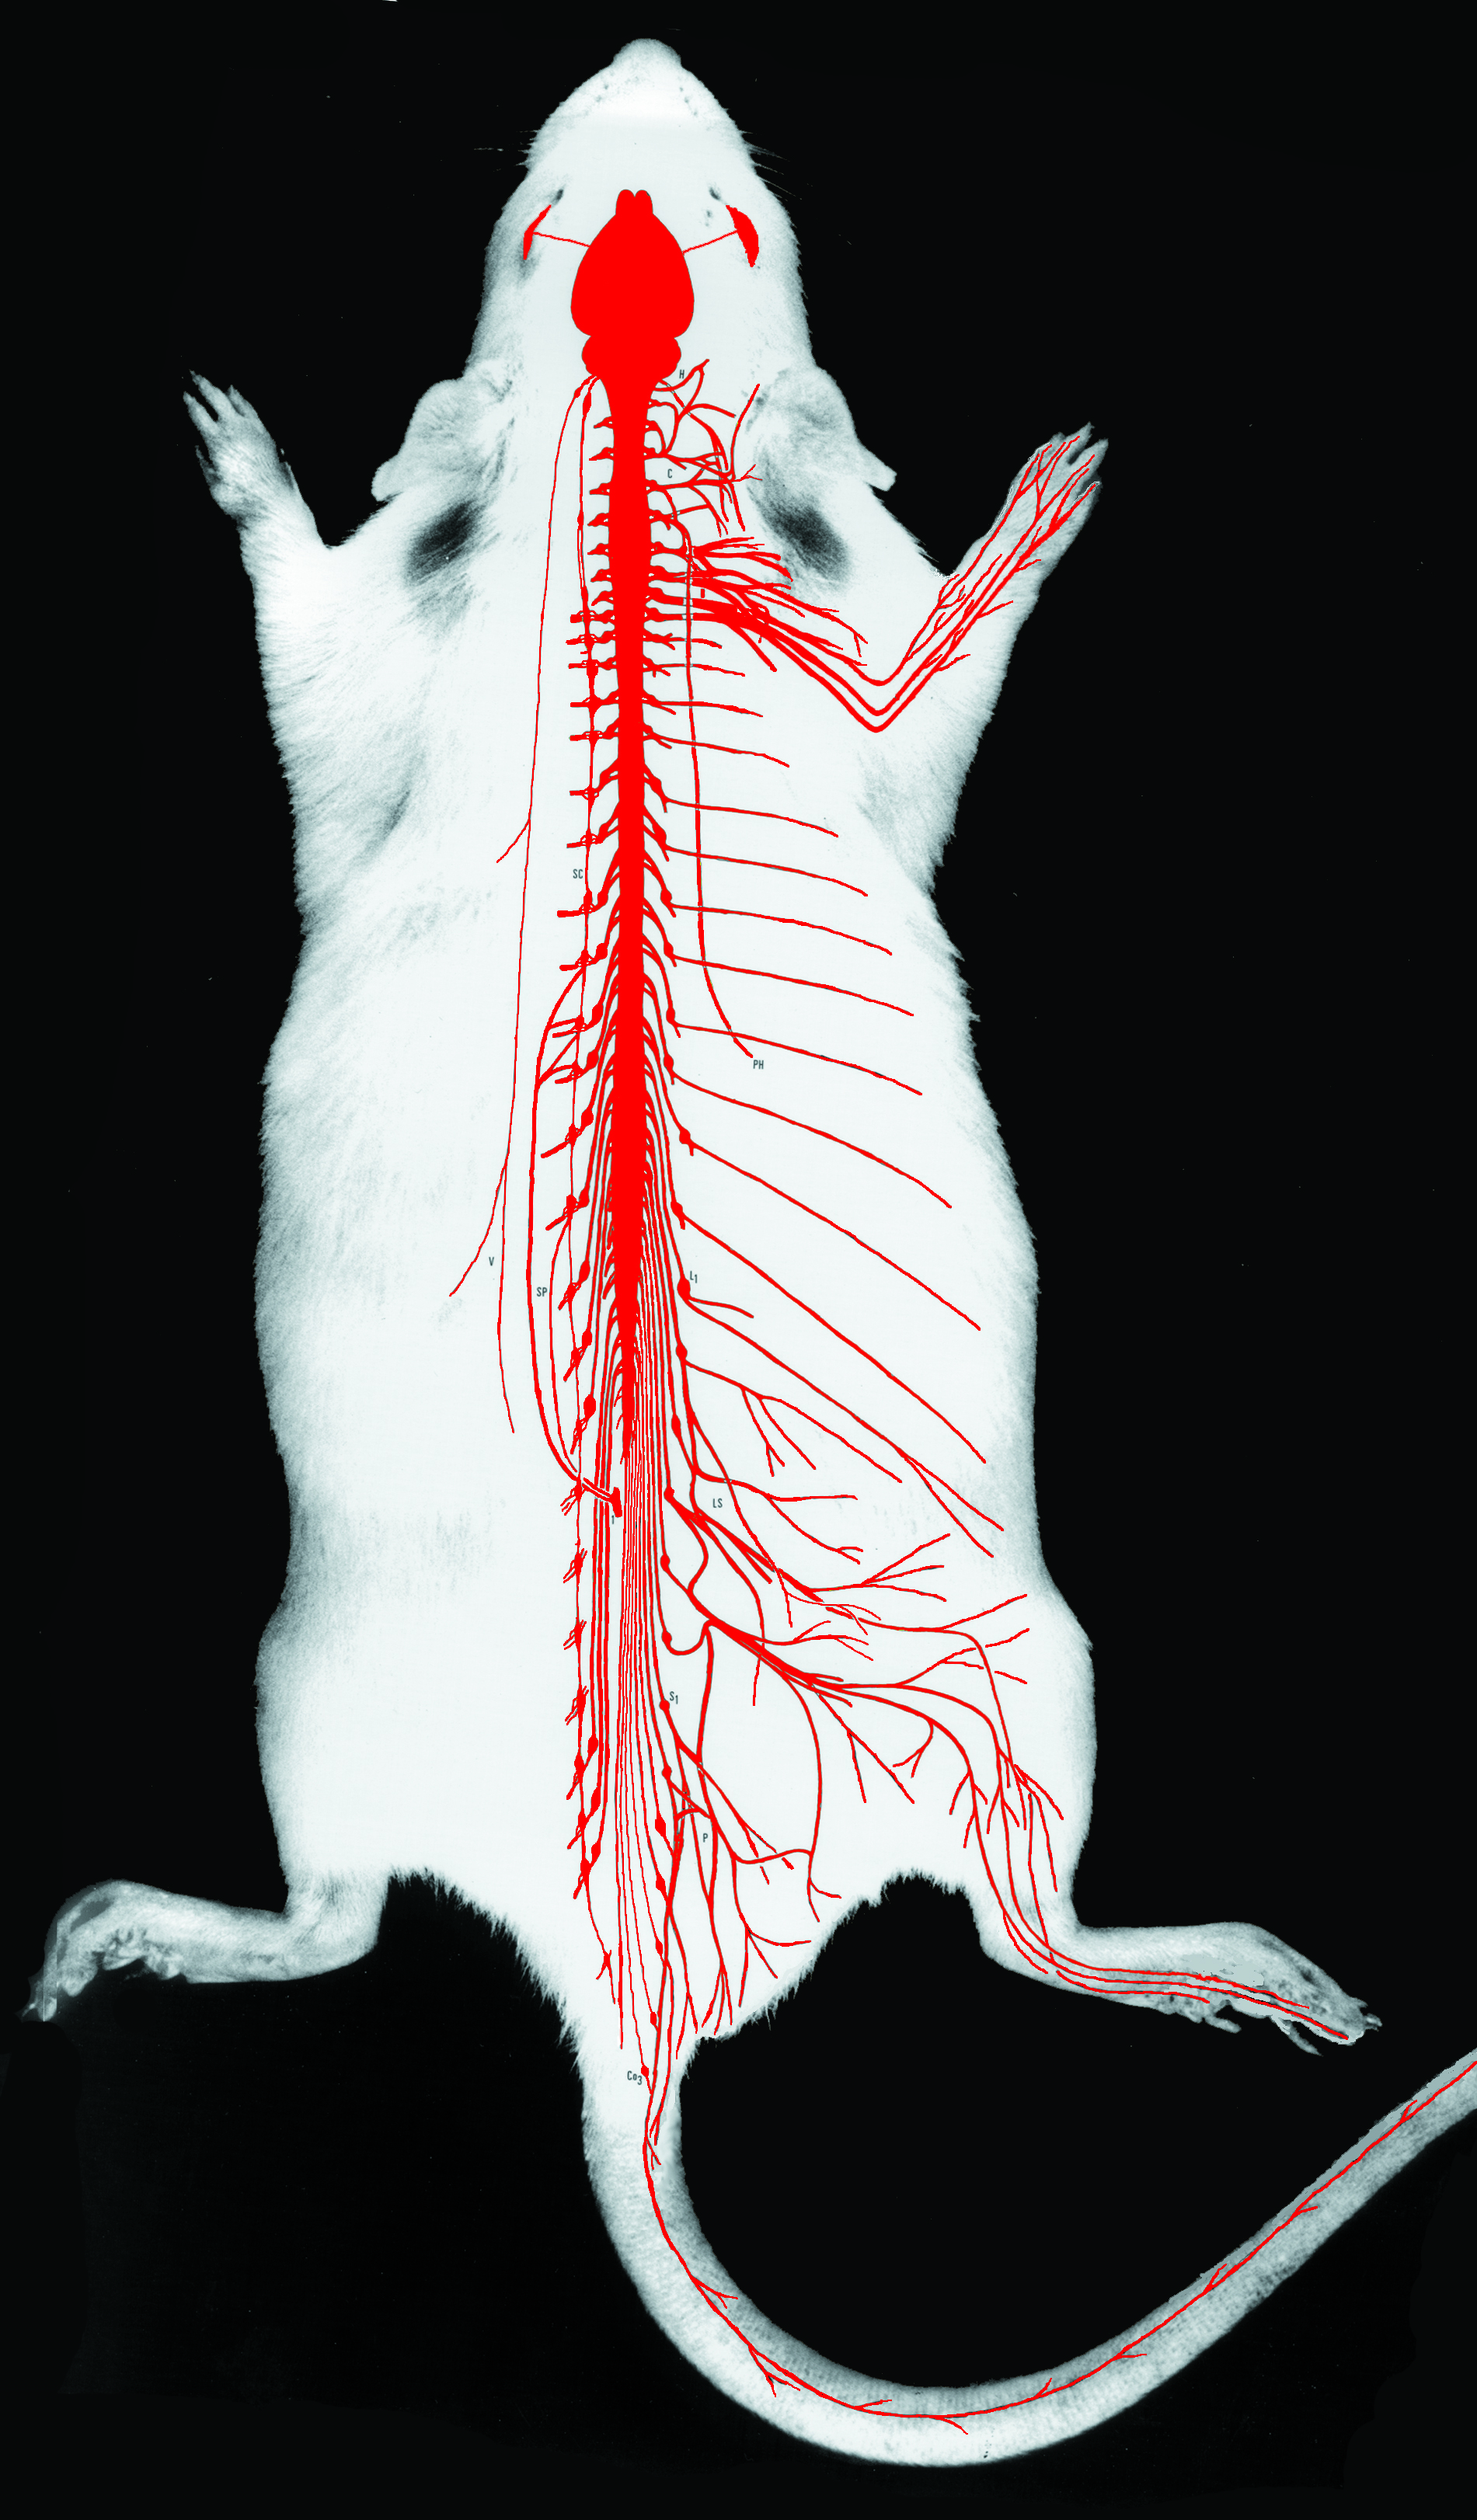 Rat anatomy muscles